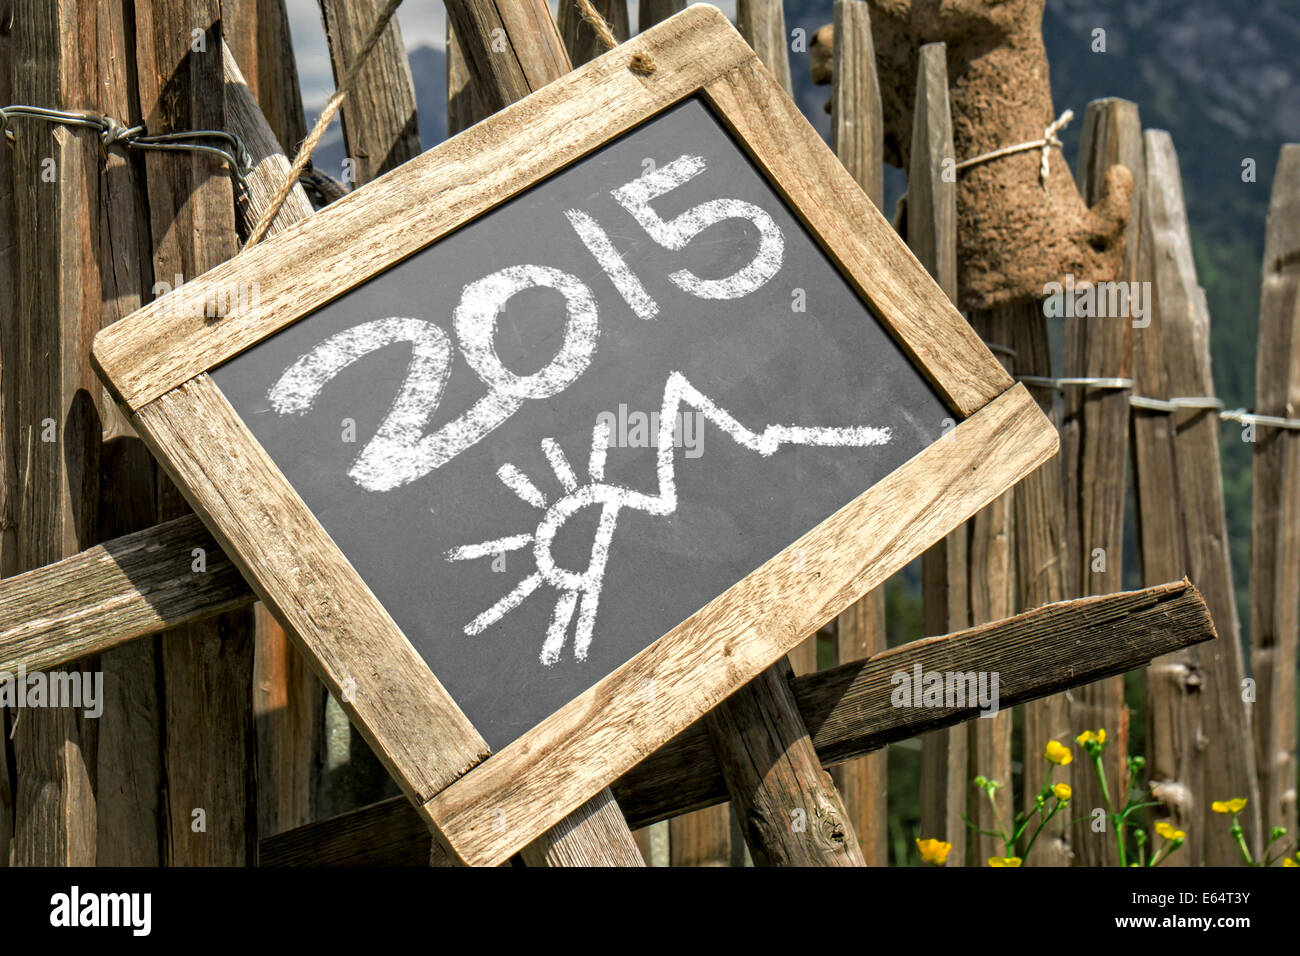 Wooden palisade with chalkboard hint panel. Chalkboard with 2015 date - Stock Image